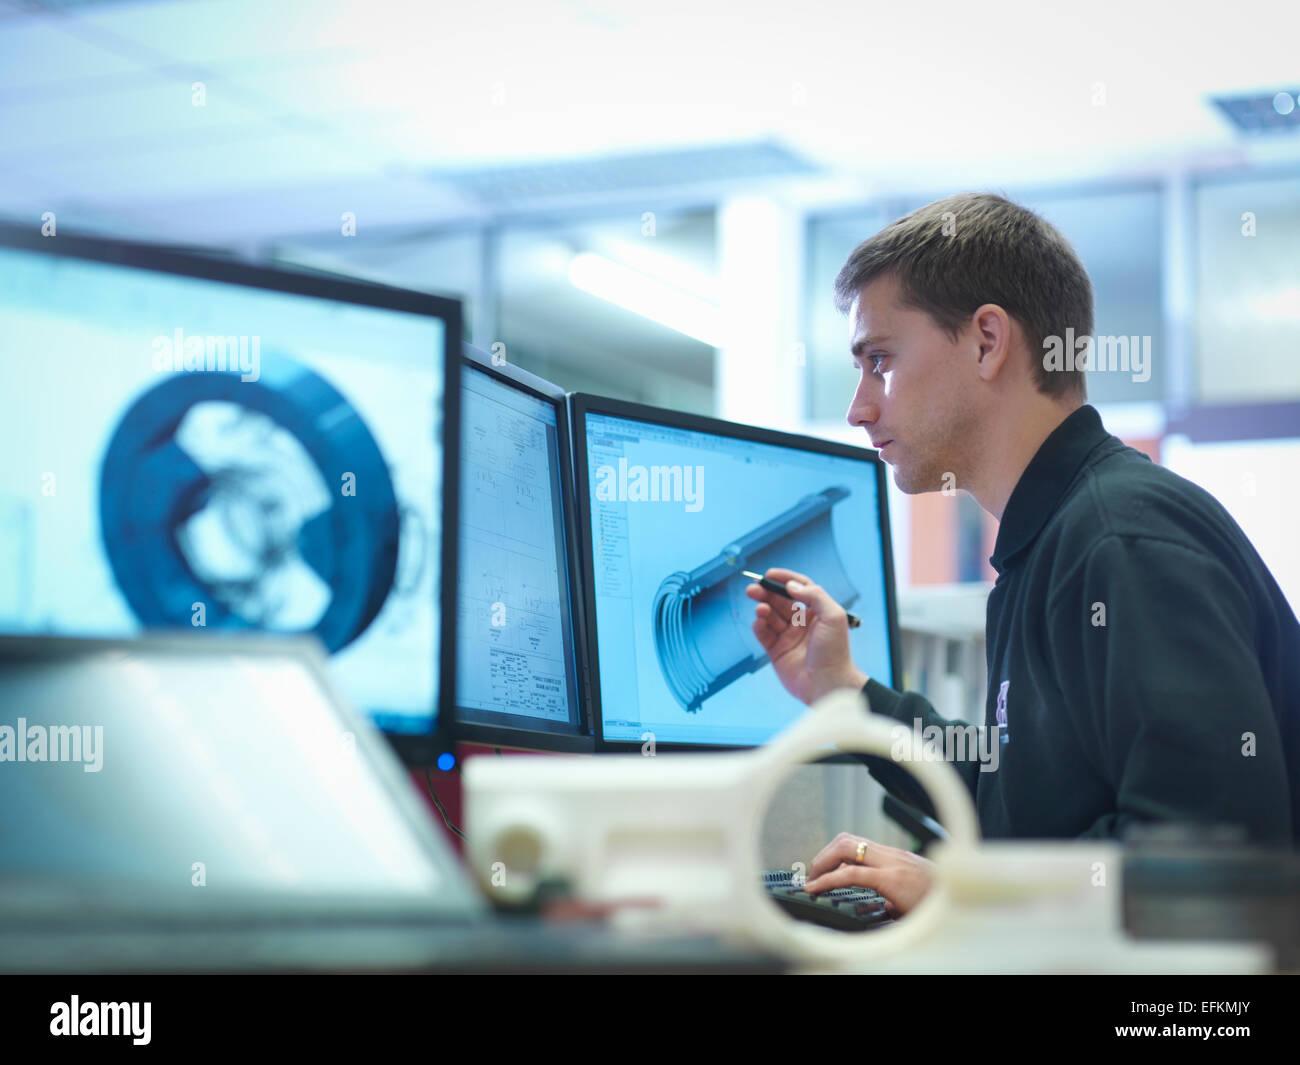 Cad Designer Working On Engineering Designs Stock Photo, Royalty ...